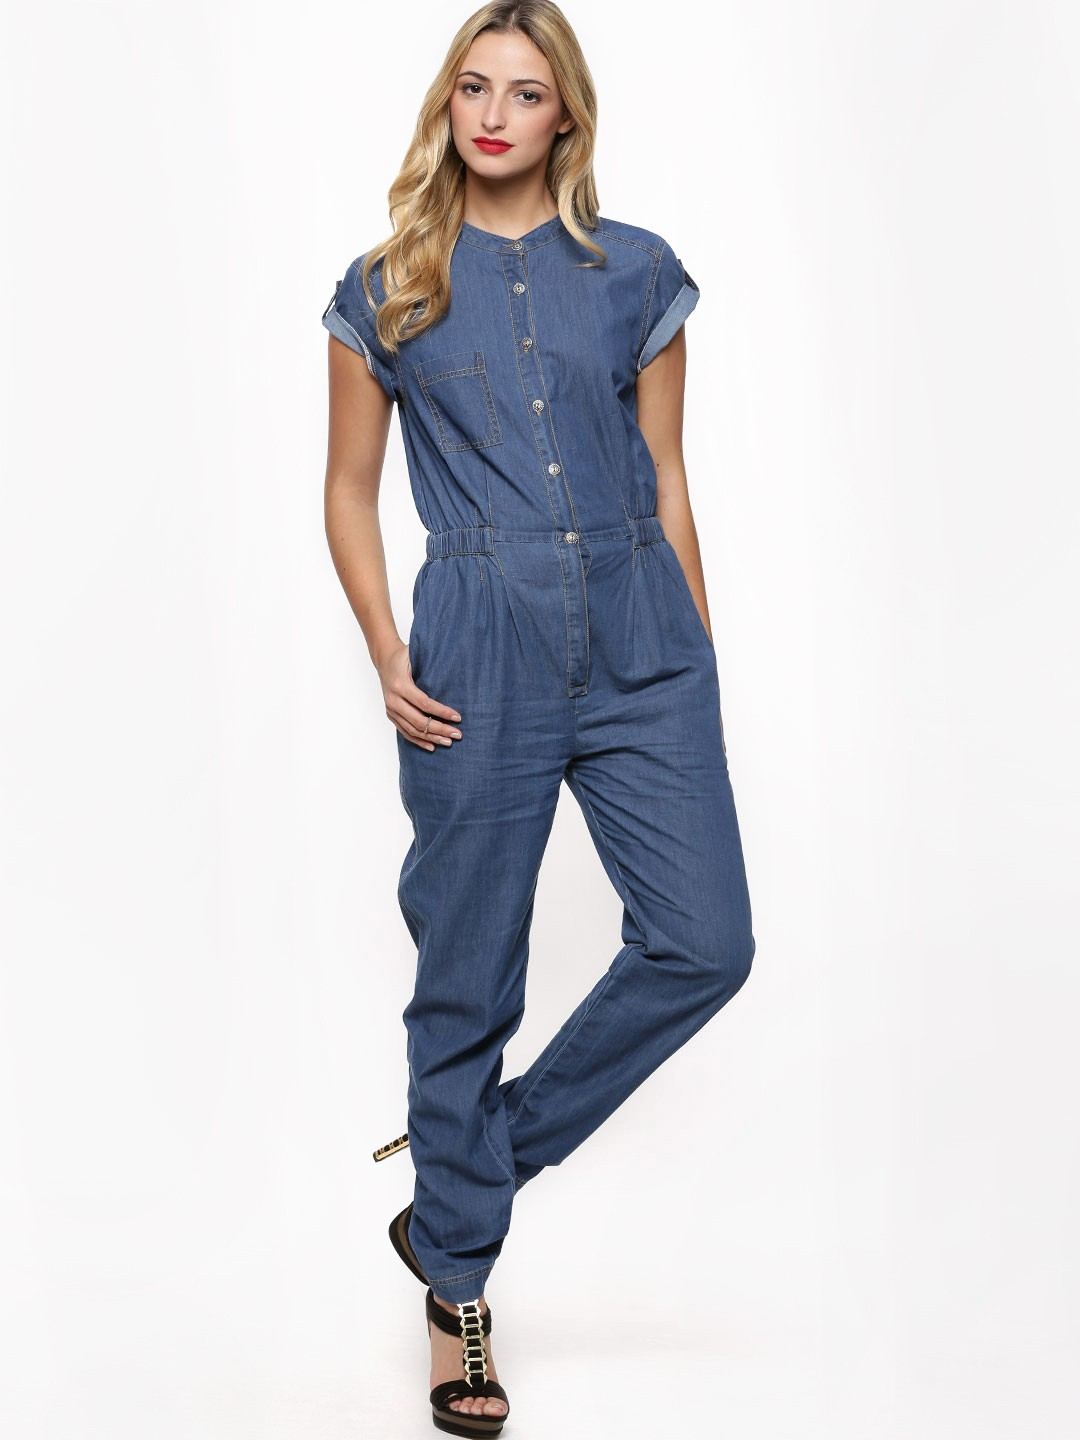 Book Of Women Jumpsuits Online India In Thailand By James U2013 Playzoa.com